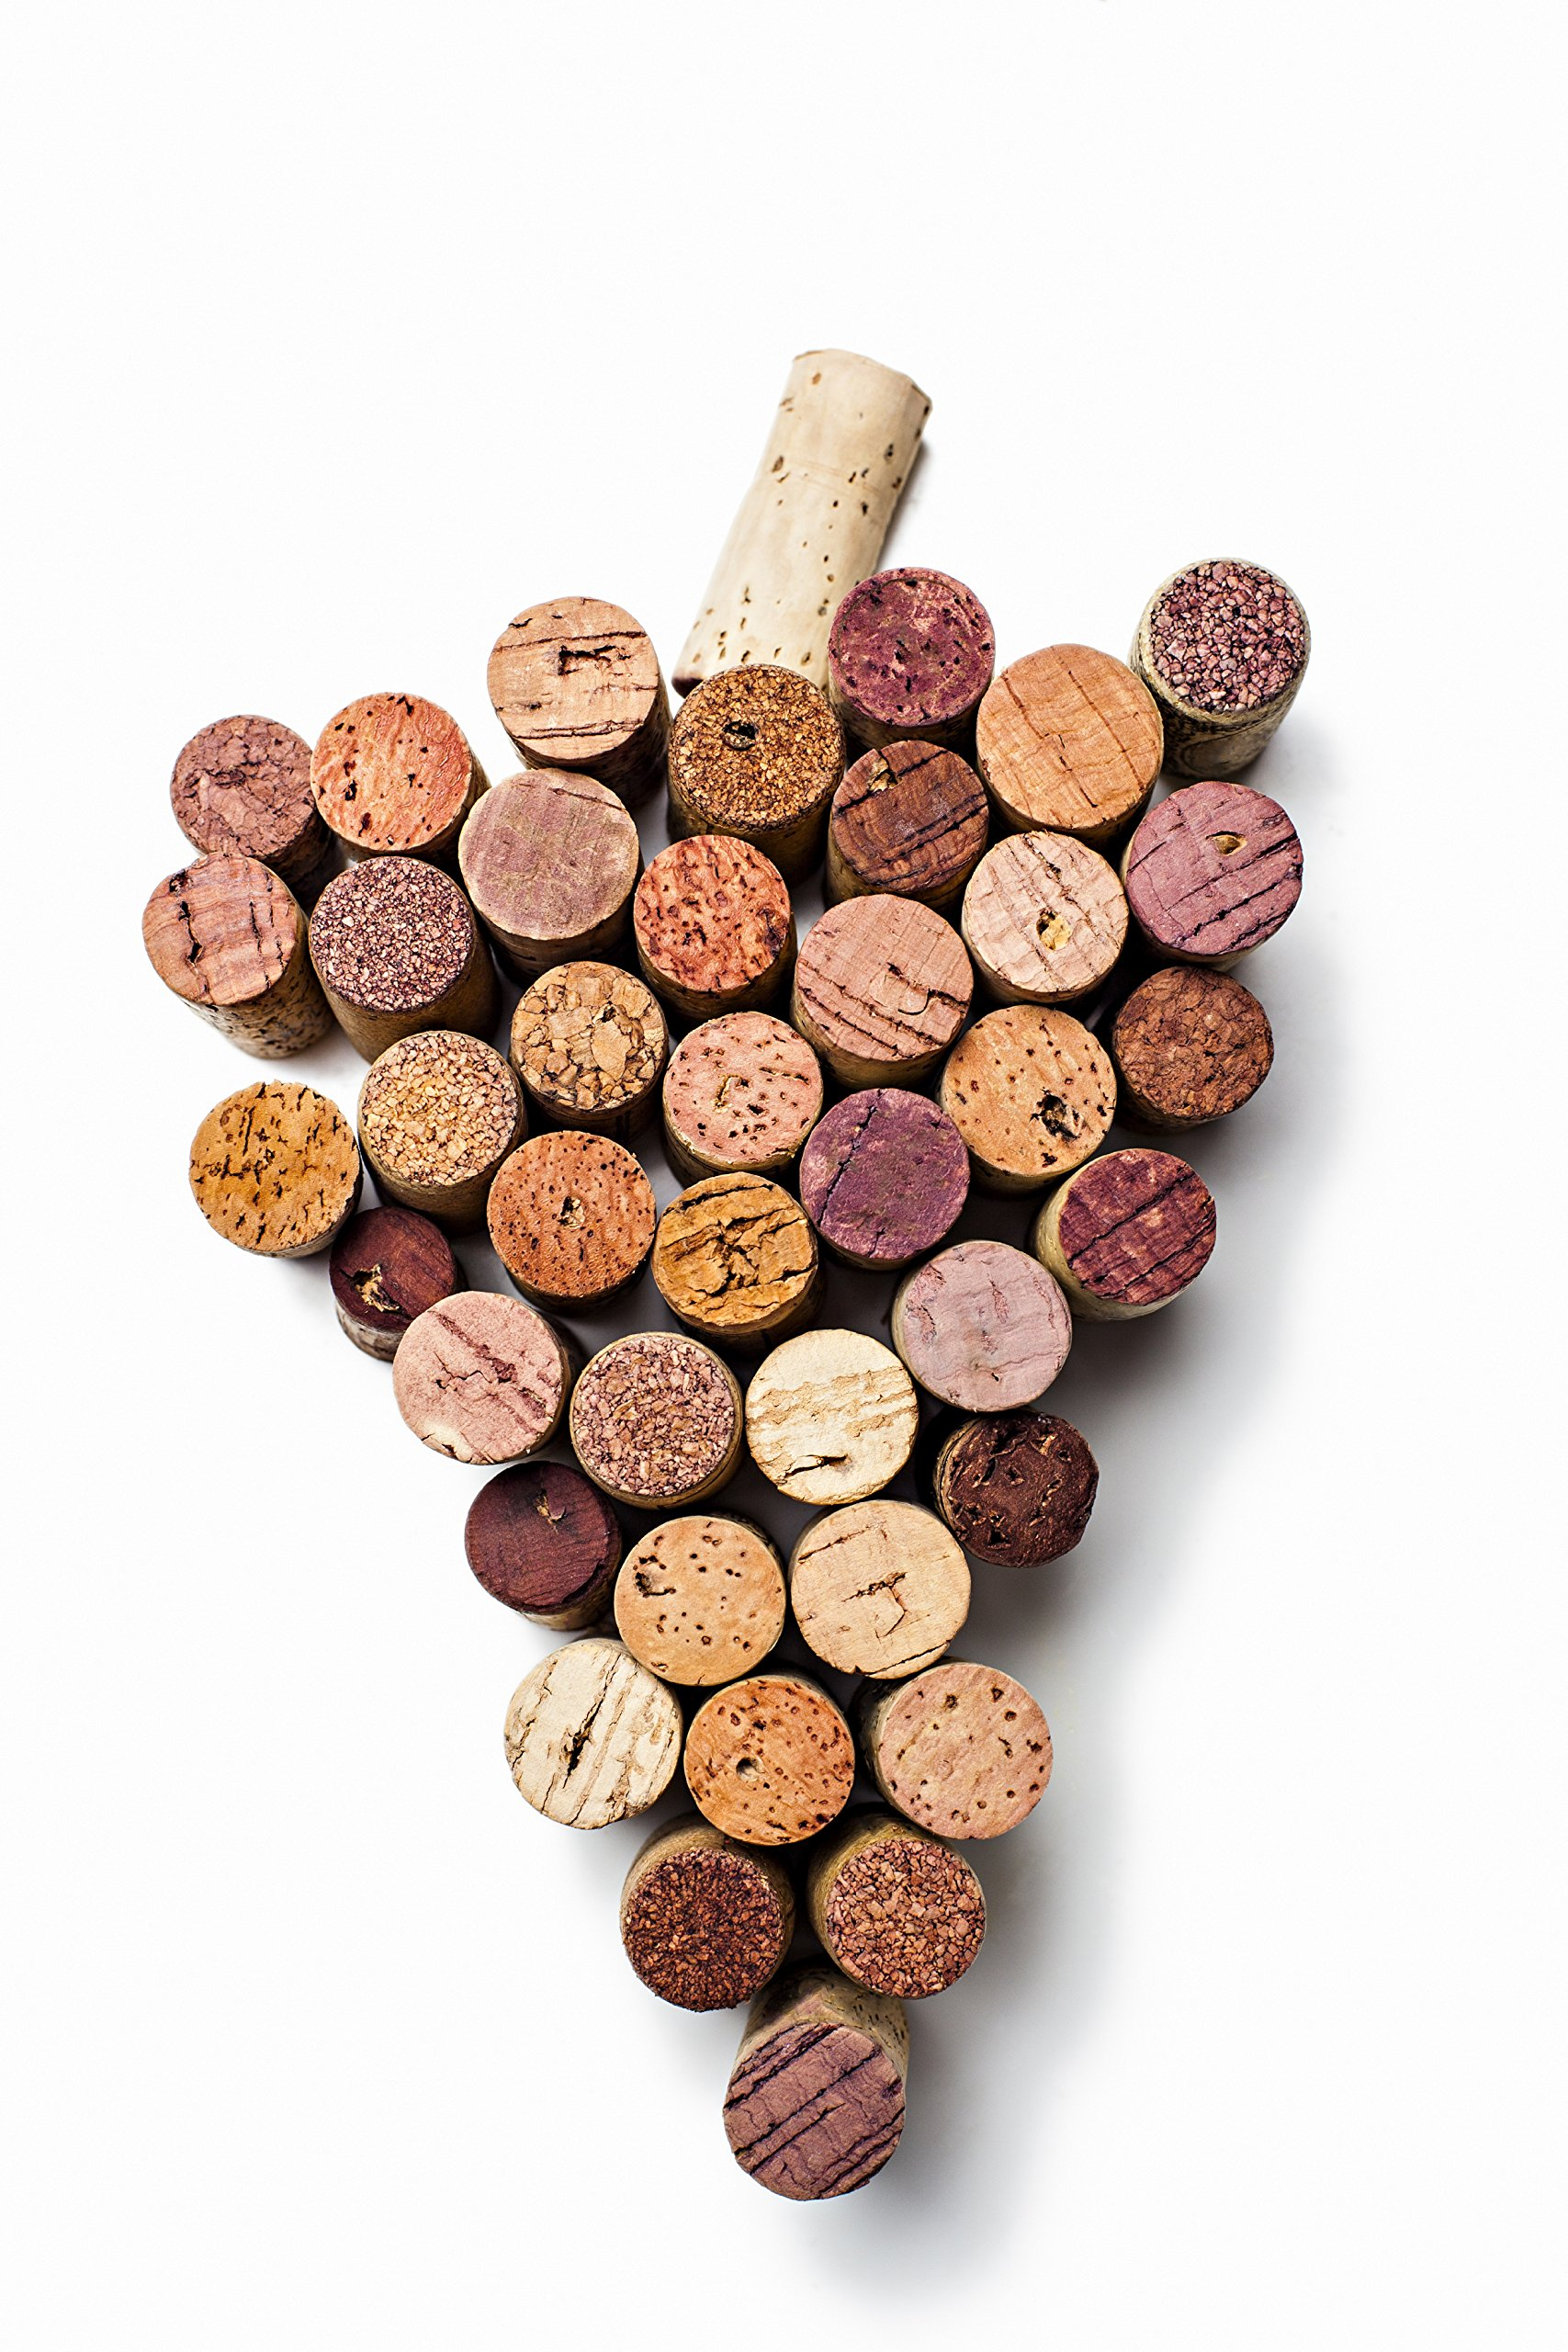 Premium Recycled Corks, Natural Wine Corks From Around the Us - 1,000 Count